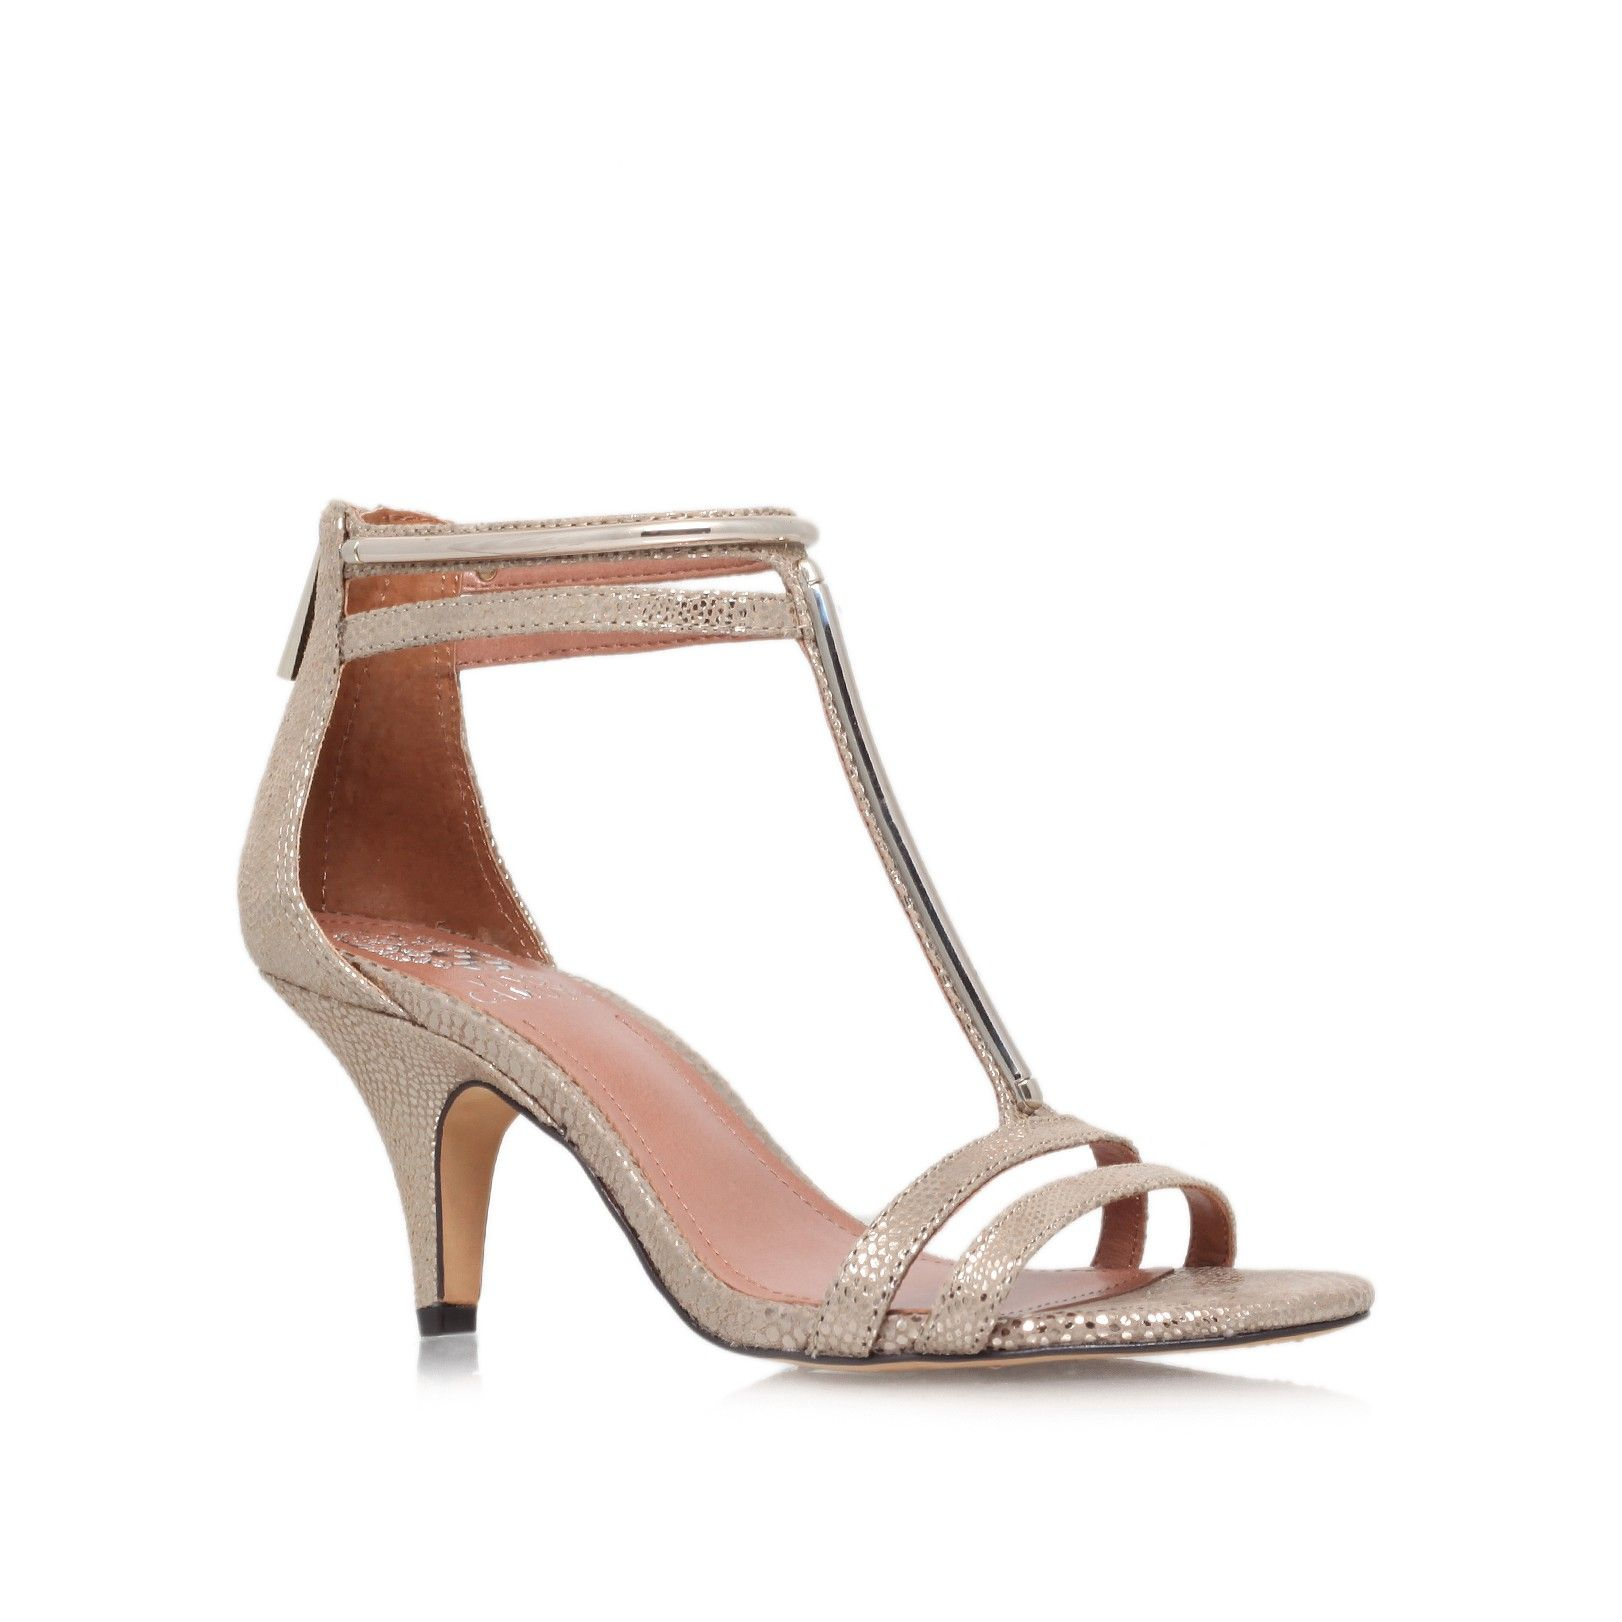 Mitzy Gold Shoe By Vince Camuto Women Shoes Party Shoes